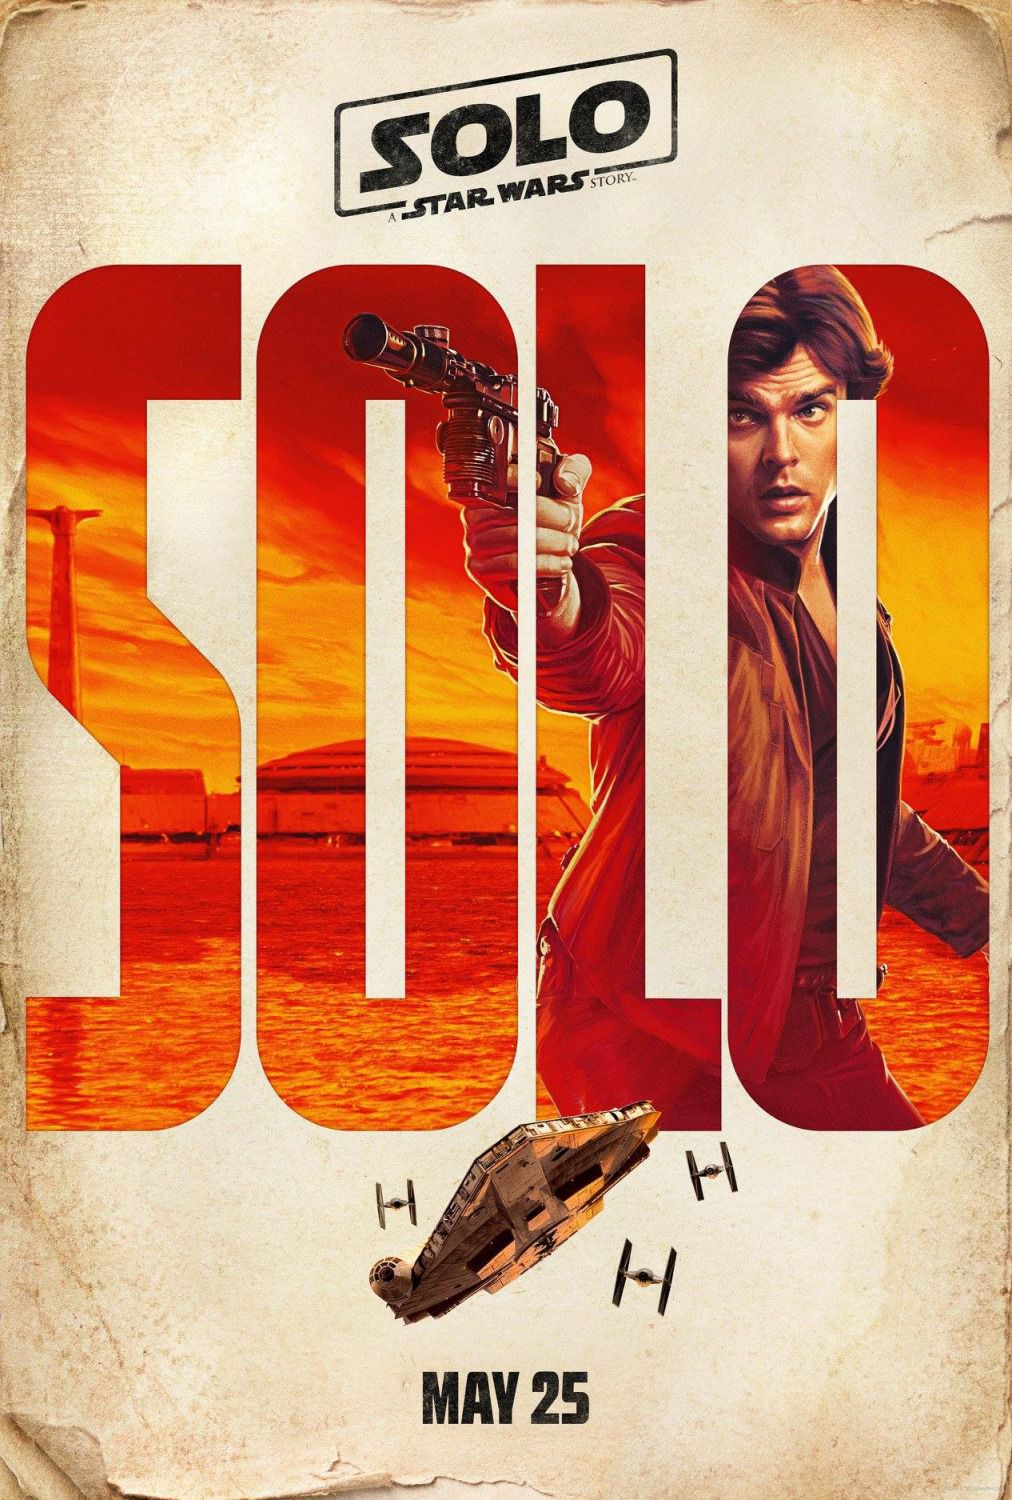 Solo a Star Wars Story (2018) - film poster memorial day